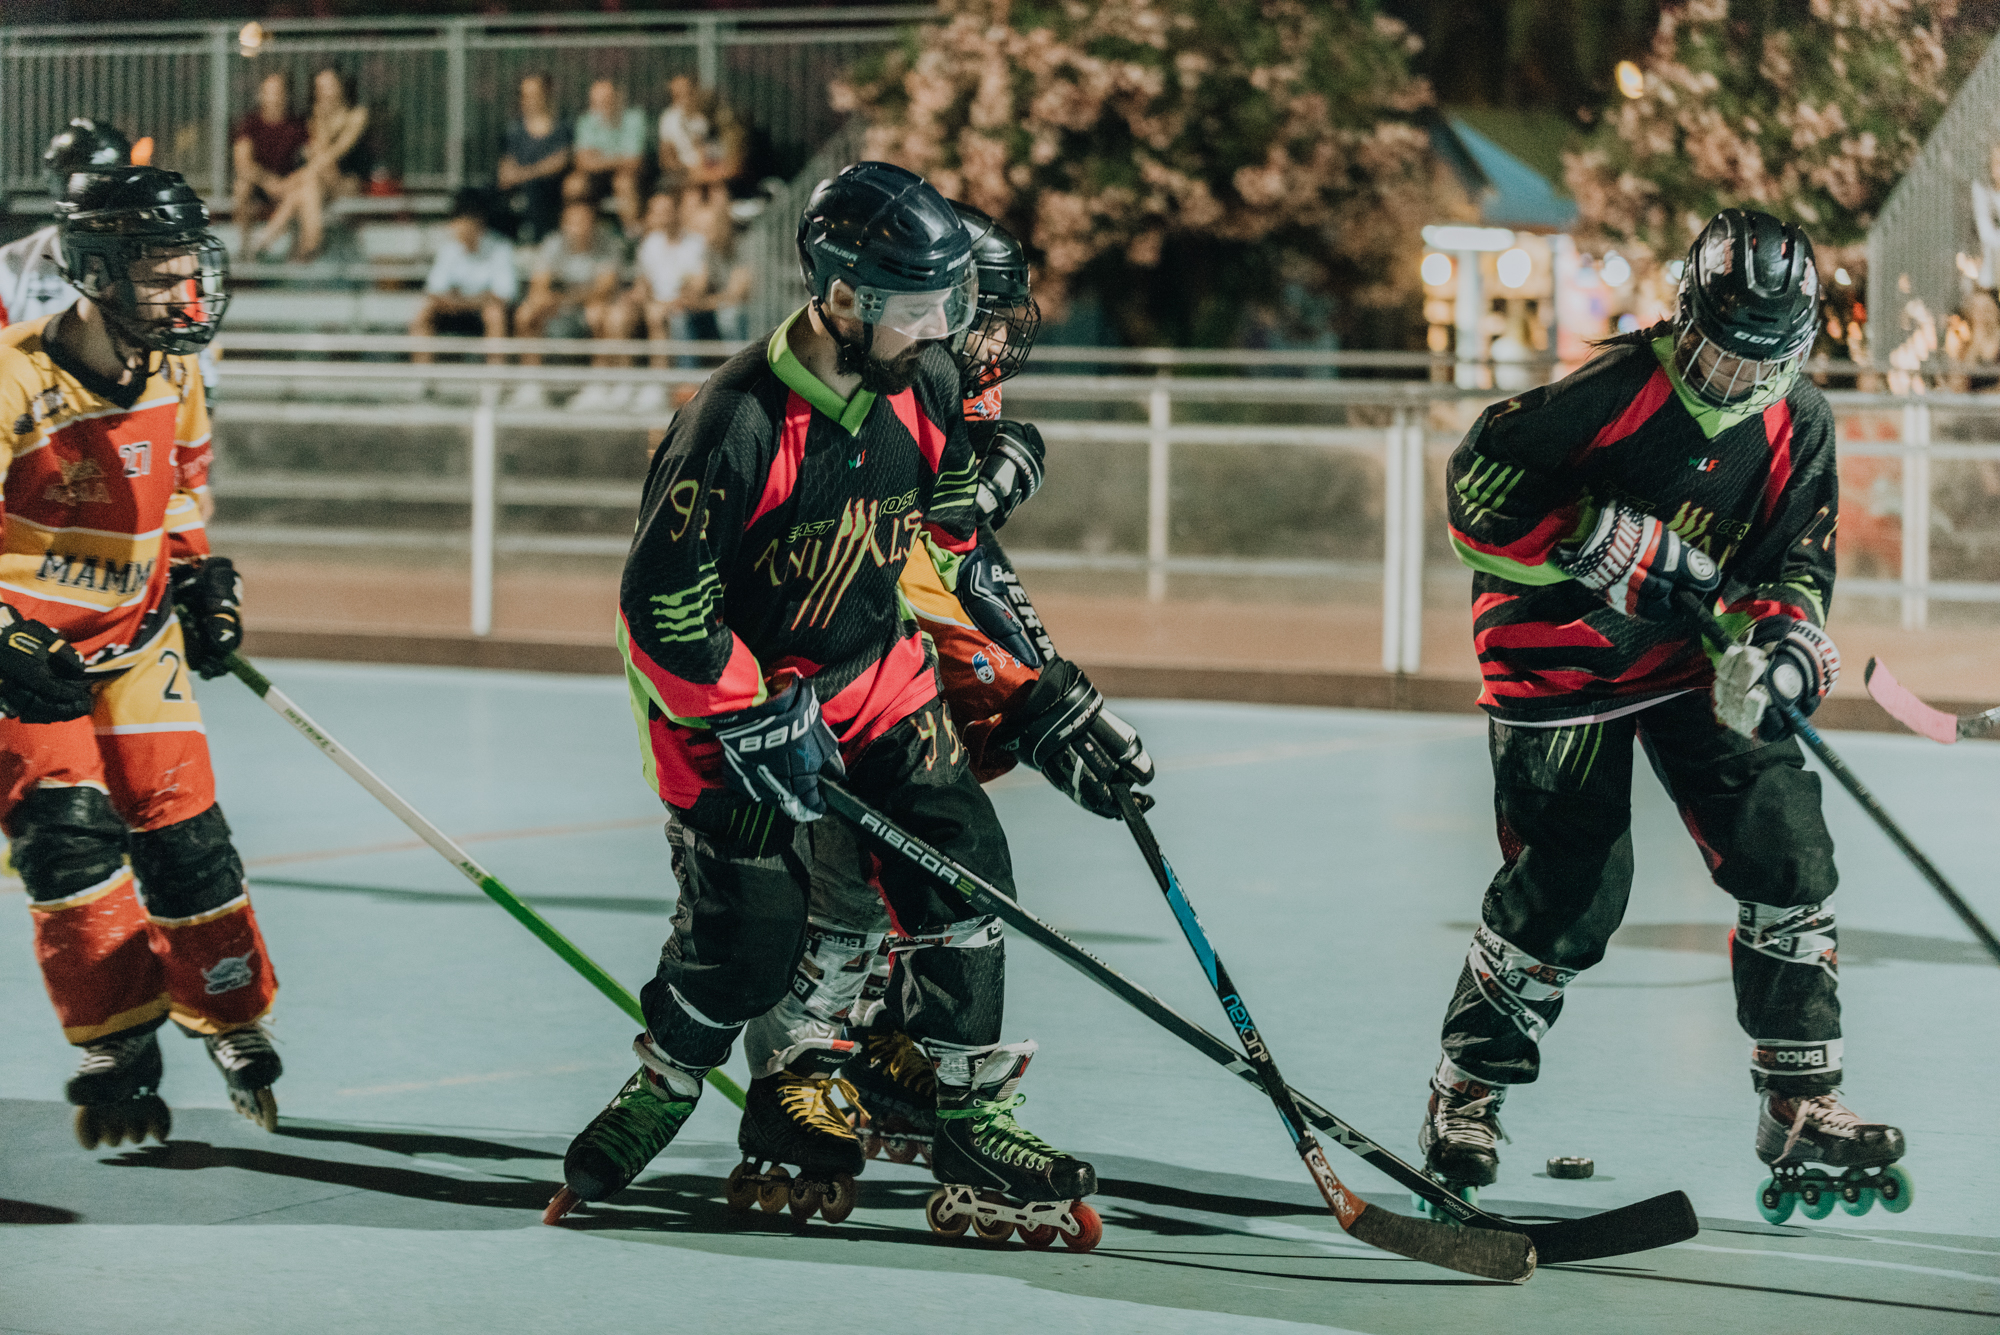 Mammuth Hockey, hockey roma, mammuth roma, inline hockey, inline hockey roma, rita foldi photography, sports photography, sports, Giacio Forever, summer hockey tournament